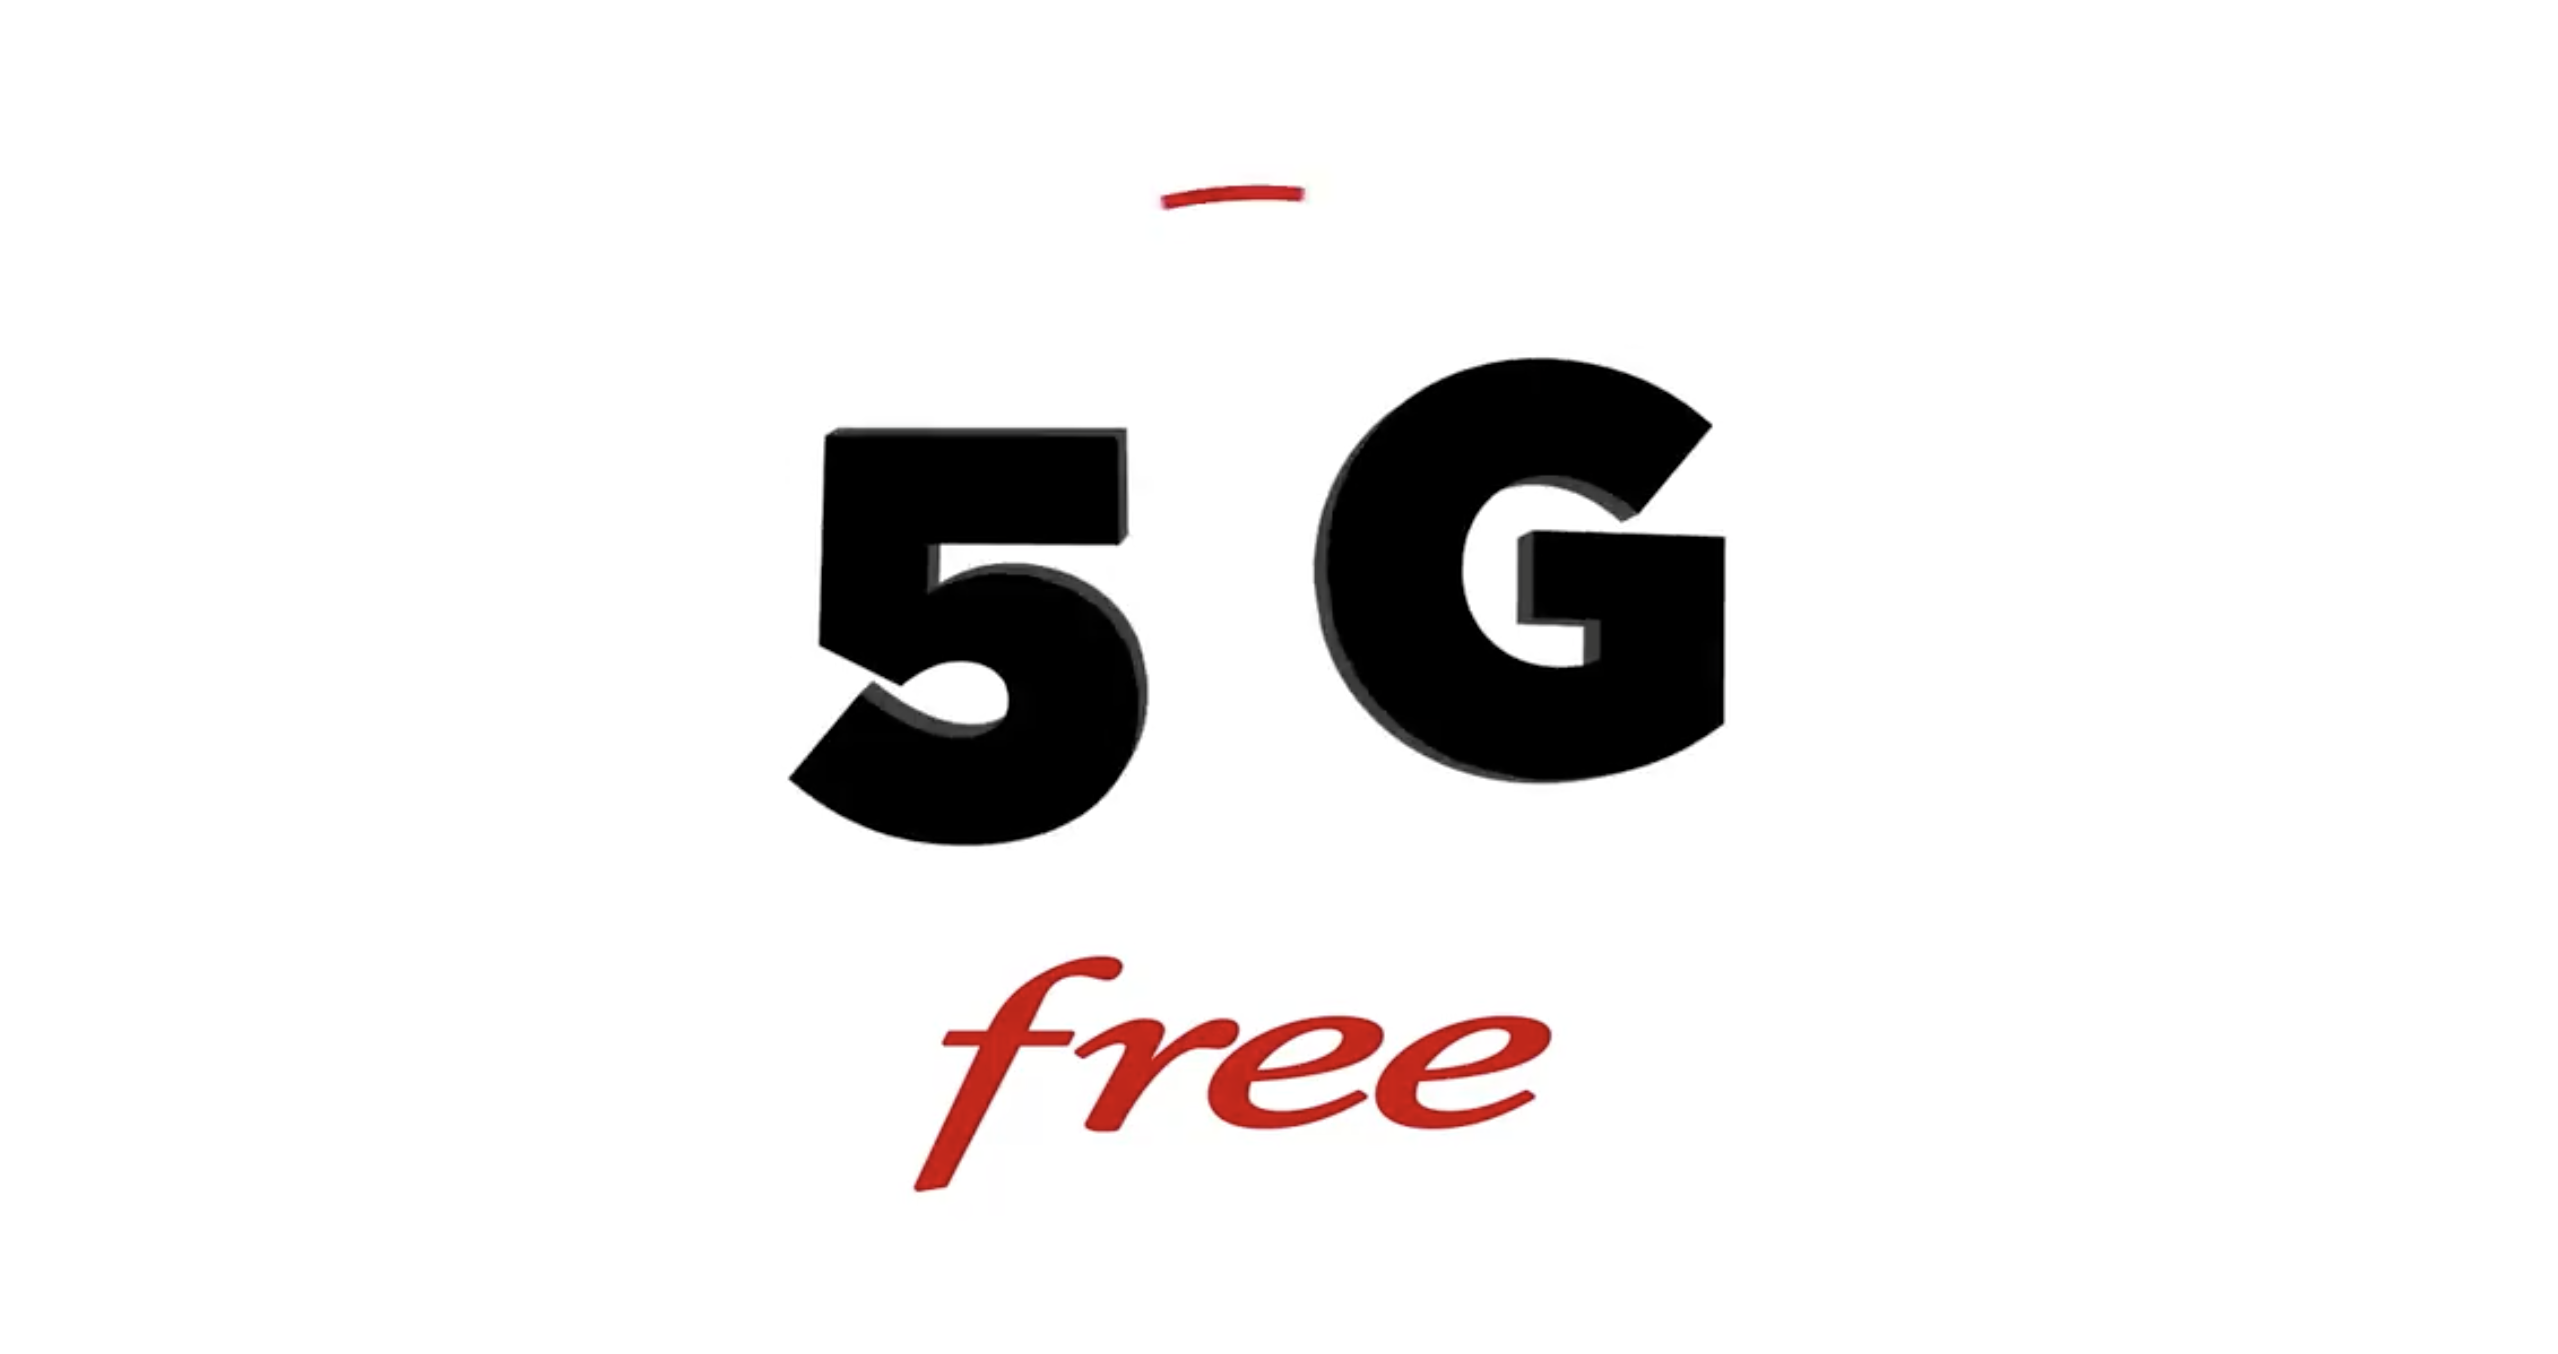 Free Mobile updates the official 4G and 5G coverage map